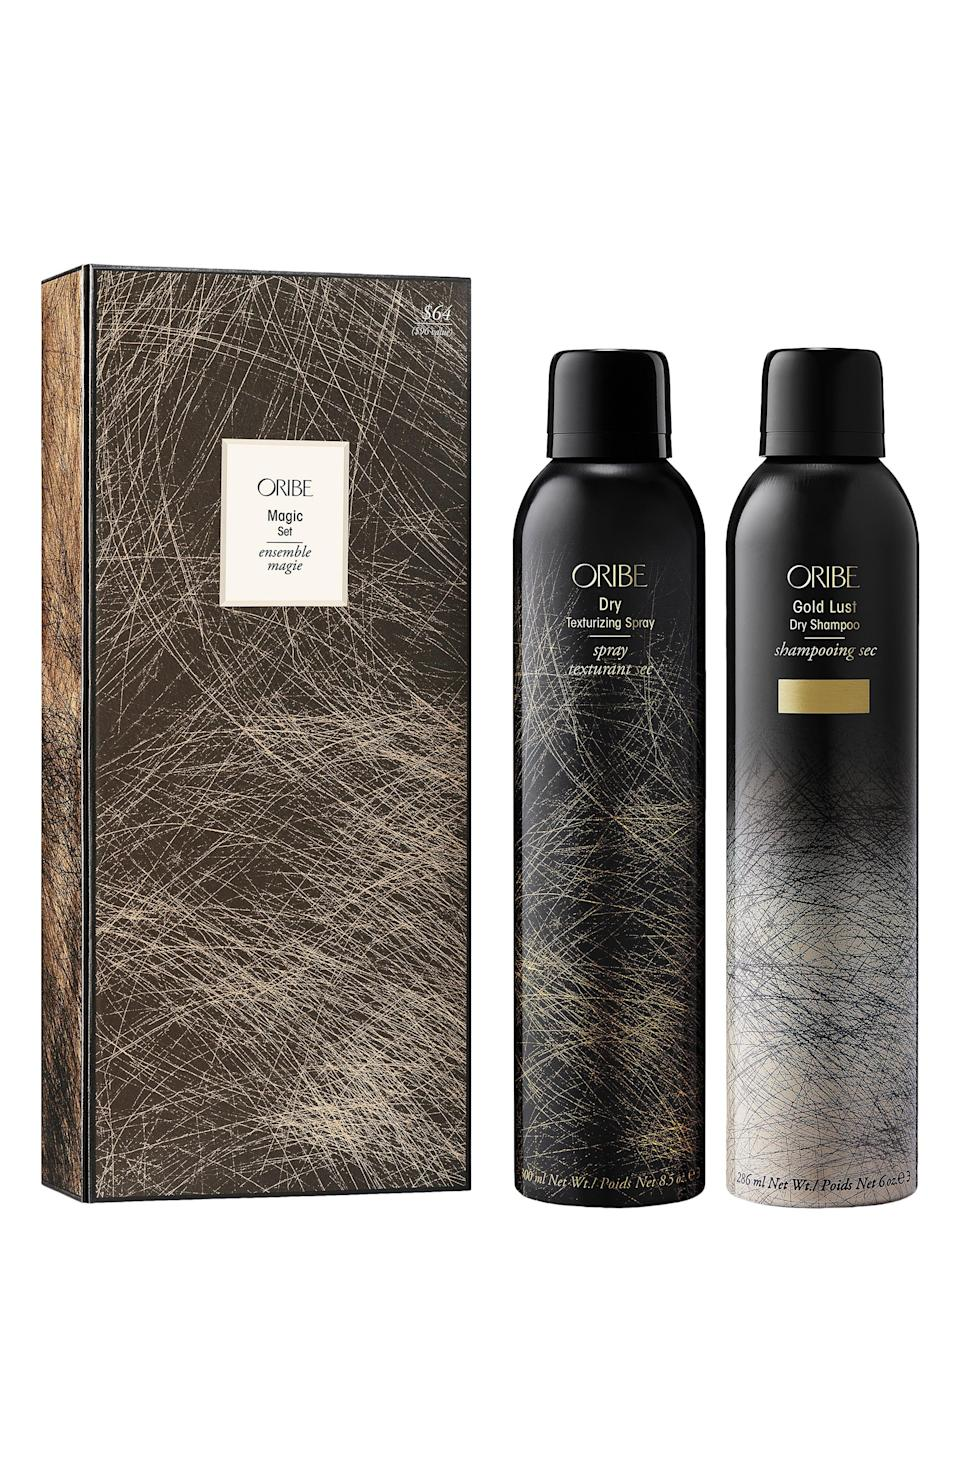 """<p><strong>Oribe</strong></p><p>nordstrom.com</p><p><strong>$64.00</strong></p><p><a href=""""https://go.redirectingat.com?id=74968X1596630&url=https%3A%2F%2Fwww.nordstrom.com%2Fs%2Foribe-magic-duo-full-size-gold-lust-dry-shampoo-dry-texturizing-spray-set-96-value%2F5893532&sref=https%3A%2F%2Fwww.elle.com%2Fbeauty%2Fg36944650%2Fnorstrom-anniversary-beauty-sale-2021%2F"""" rel=""""nofollow noopener"""" target=""""_blank"""" data-ylk=""""slk:Shop Now"""" class=""""link rapid-noclick-resp"""">Shop Now</a></p><p>For waves that are beachy and cool, you'll need this dry shampoo and texturizing spray duo. Lie to your friends and say that your hair dried that way when everyone knows that you spend 30 minutes styling.</p>"""